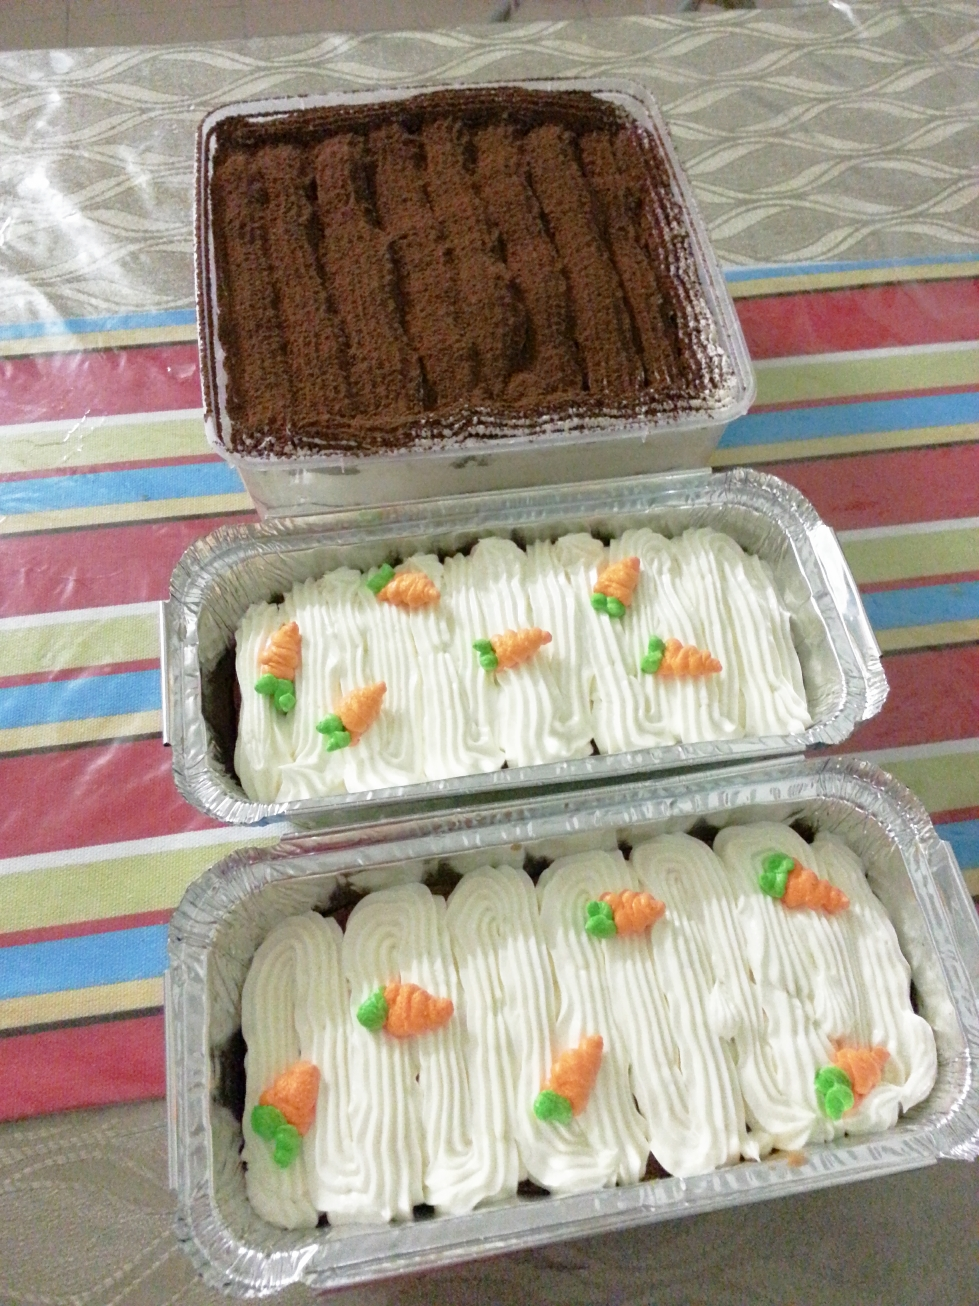 Heavenly carrot cake & tiramisu cake